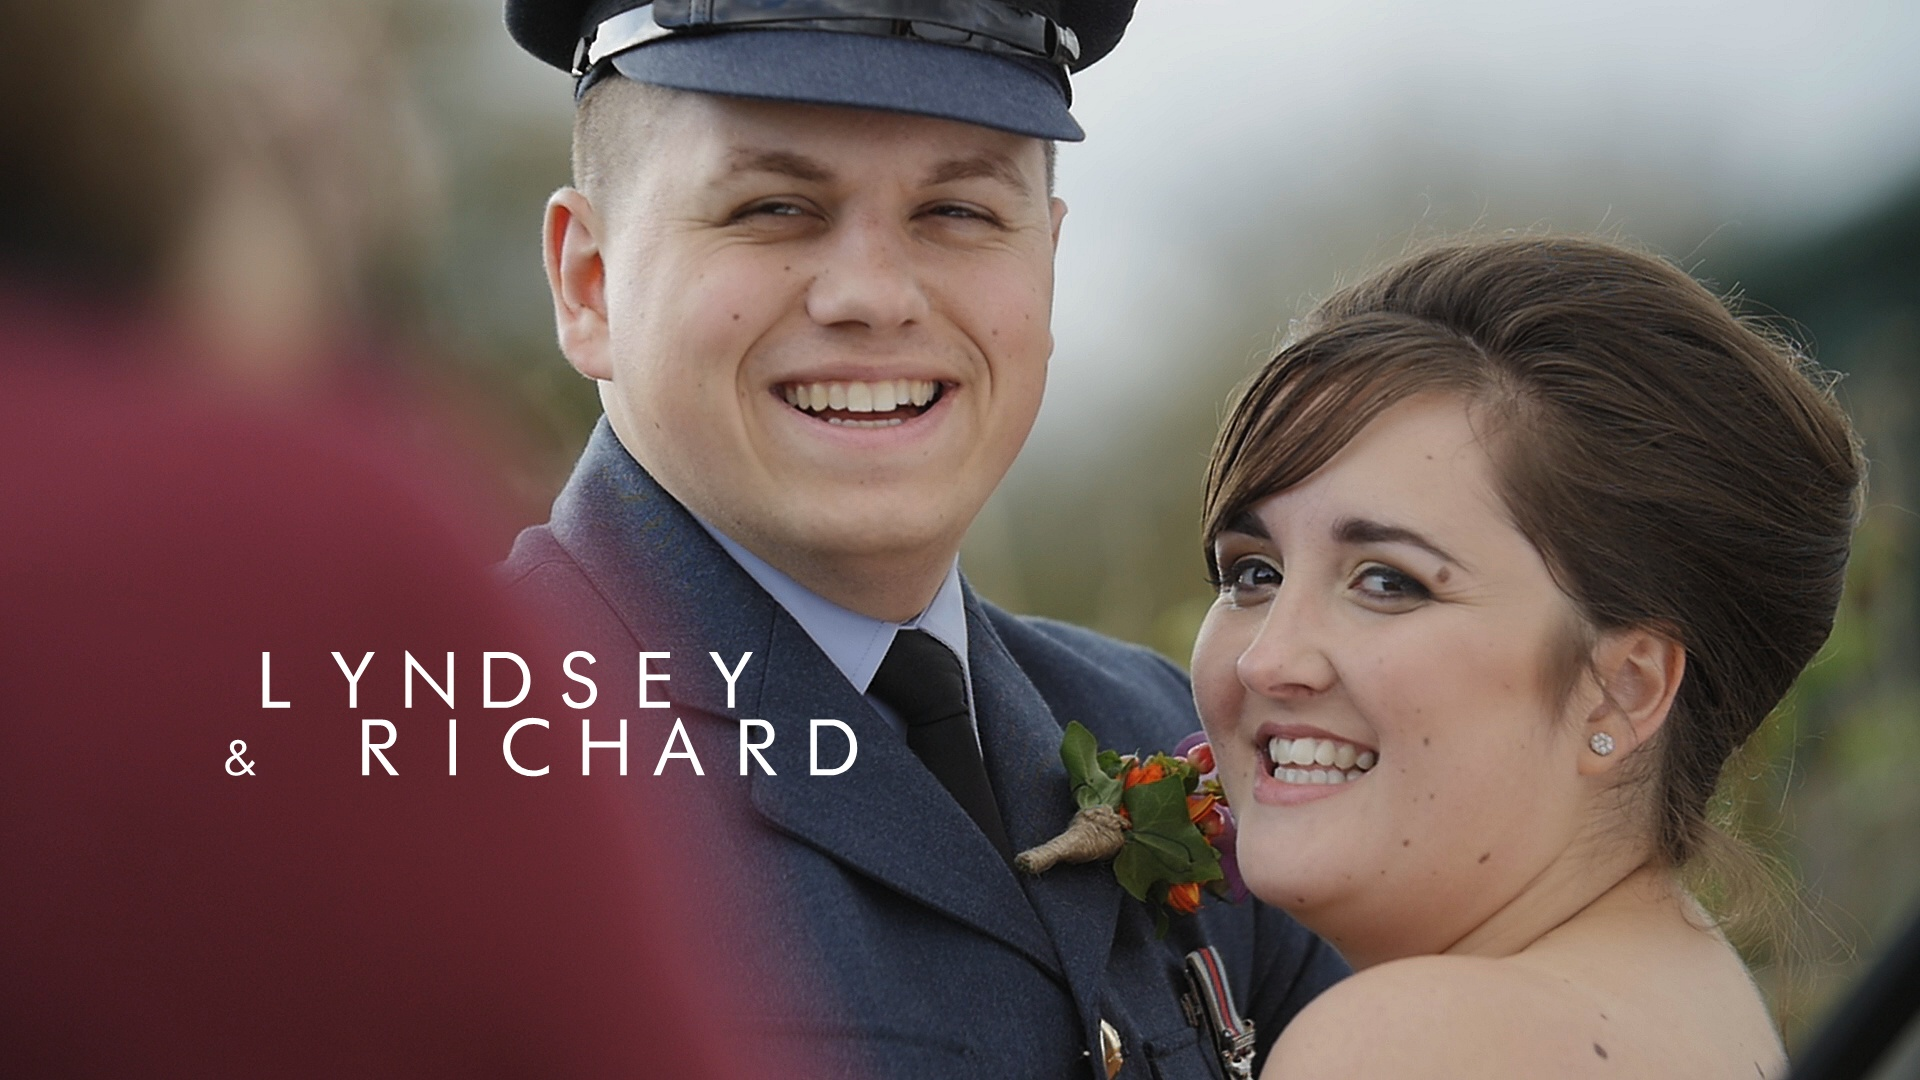 Lyndsey & Richard